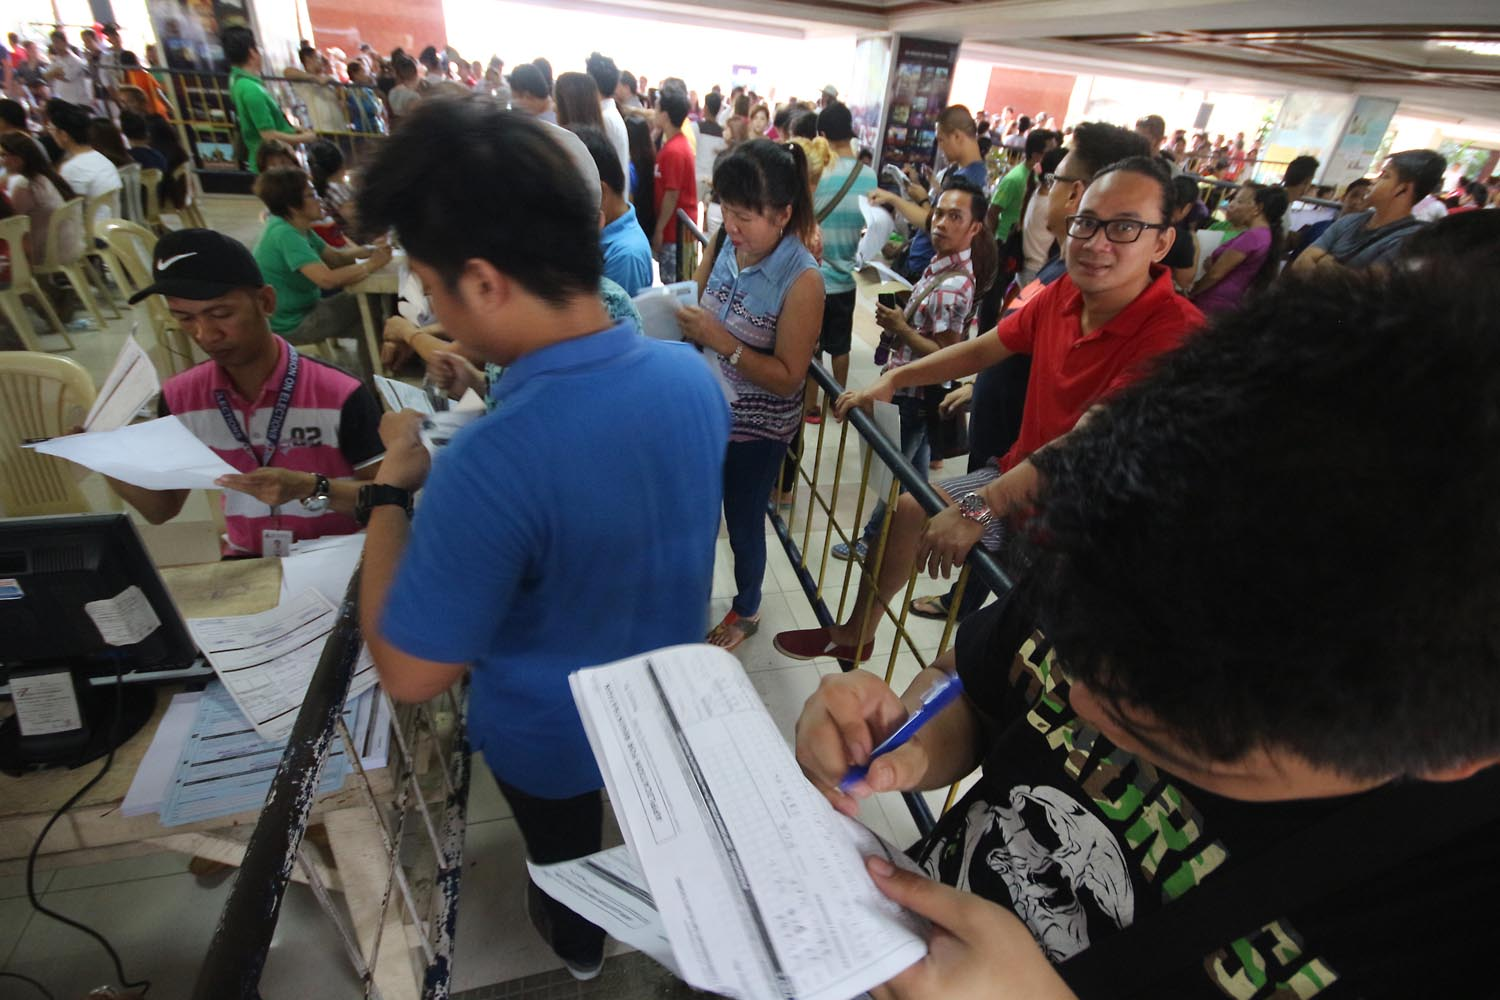 philippine legal system sangguniang kabataan divorce The philippines will be the implementation of the law on the sangguniang kabataan elections will eventually lead to reforms within the electoral system.